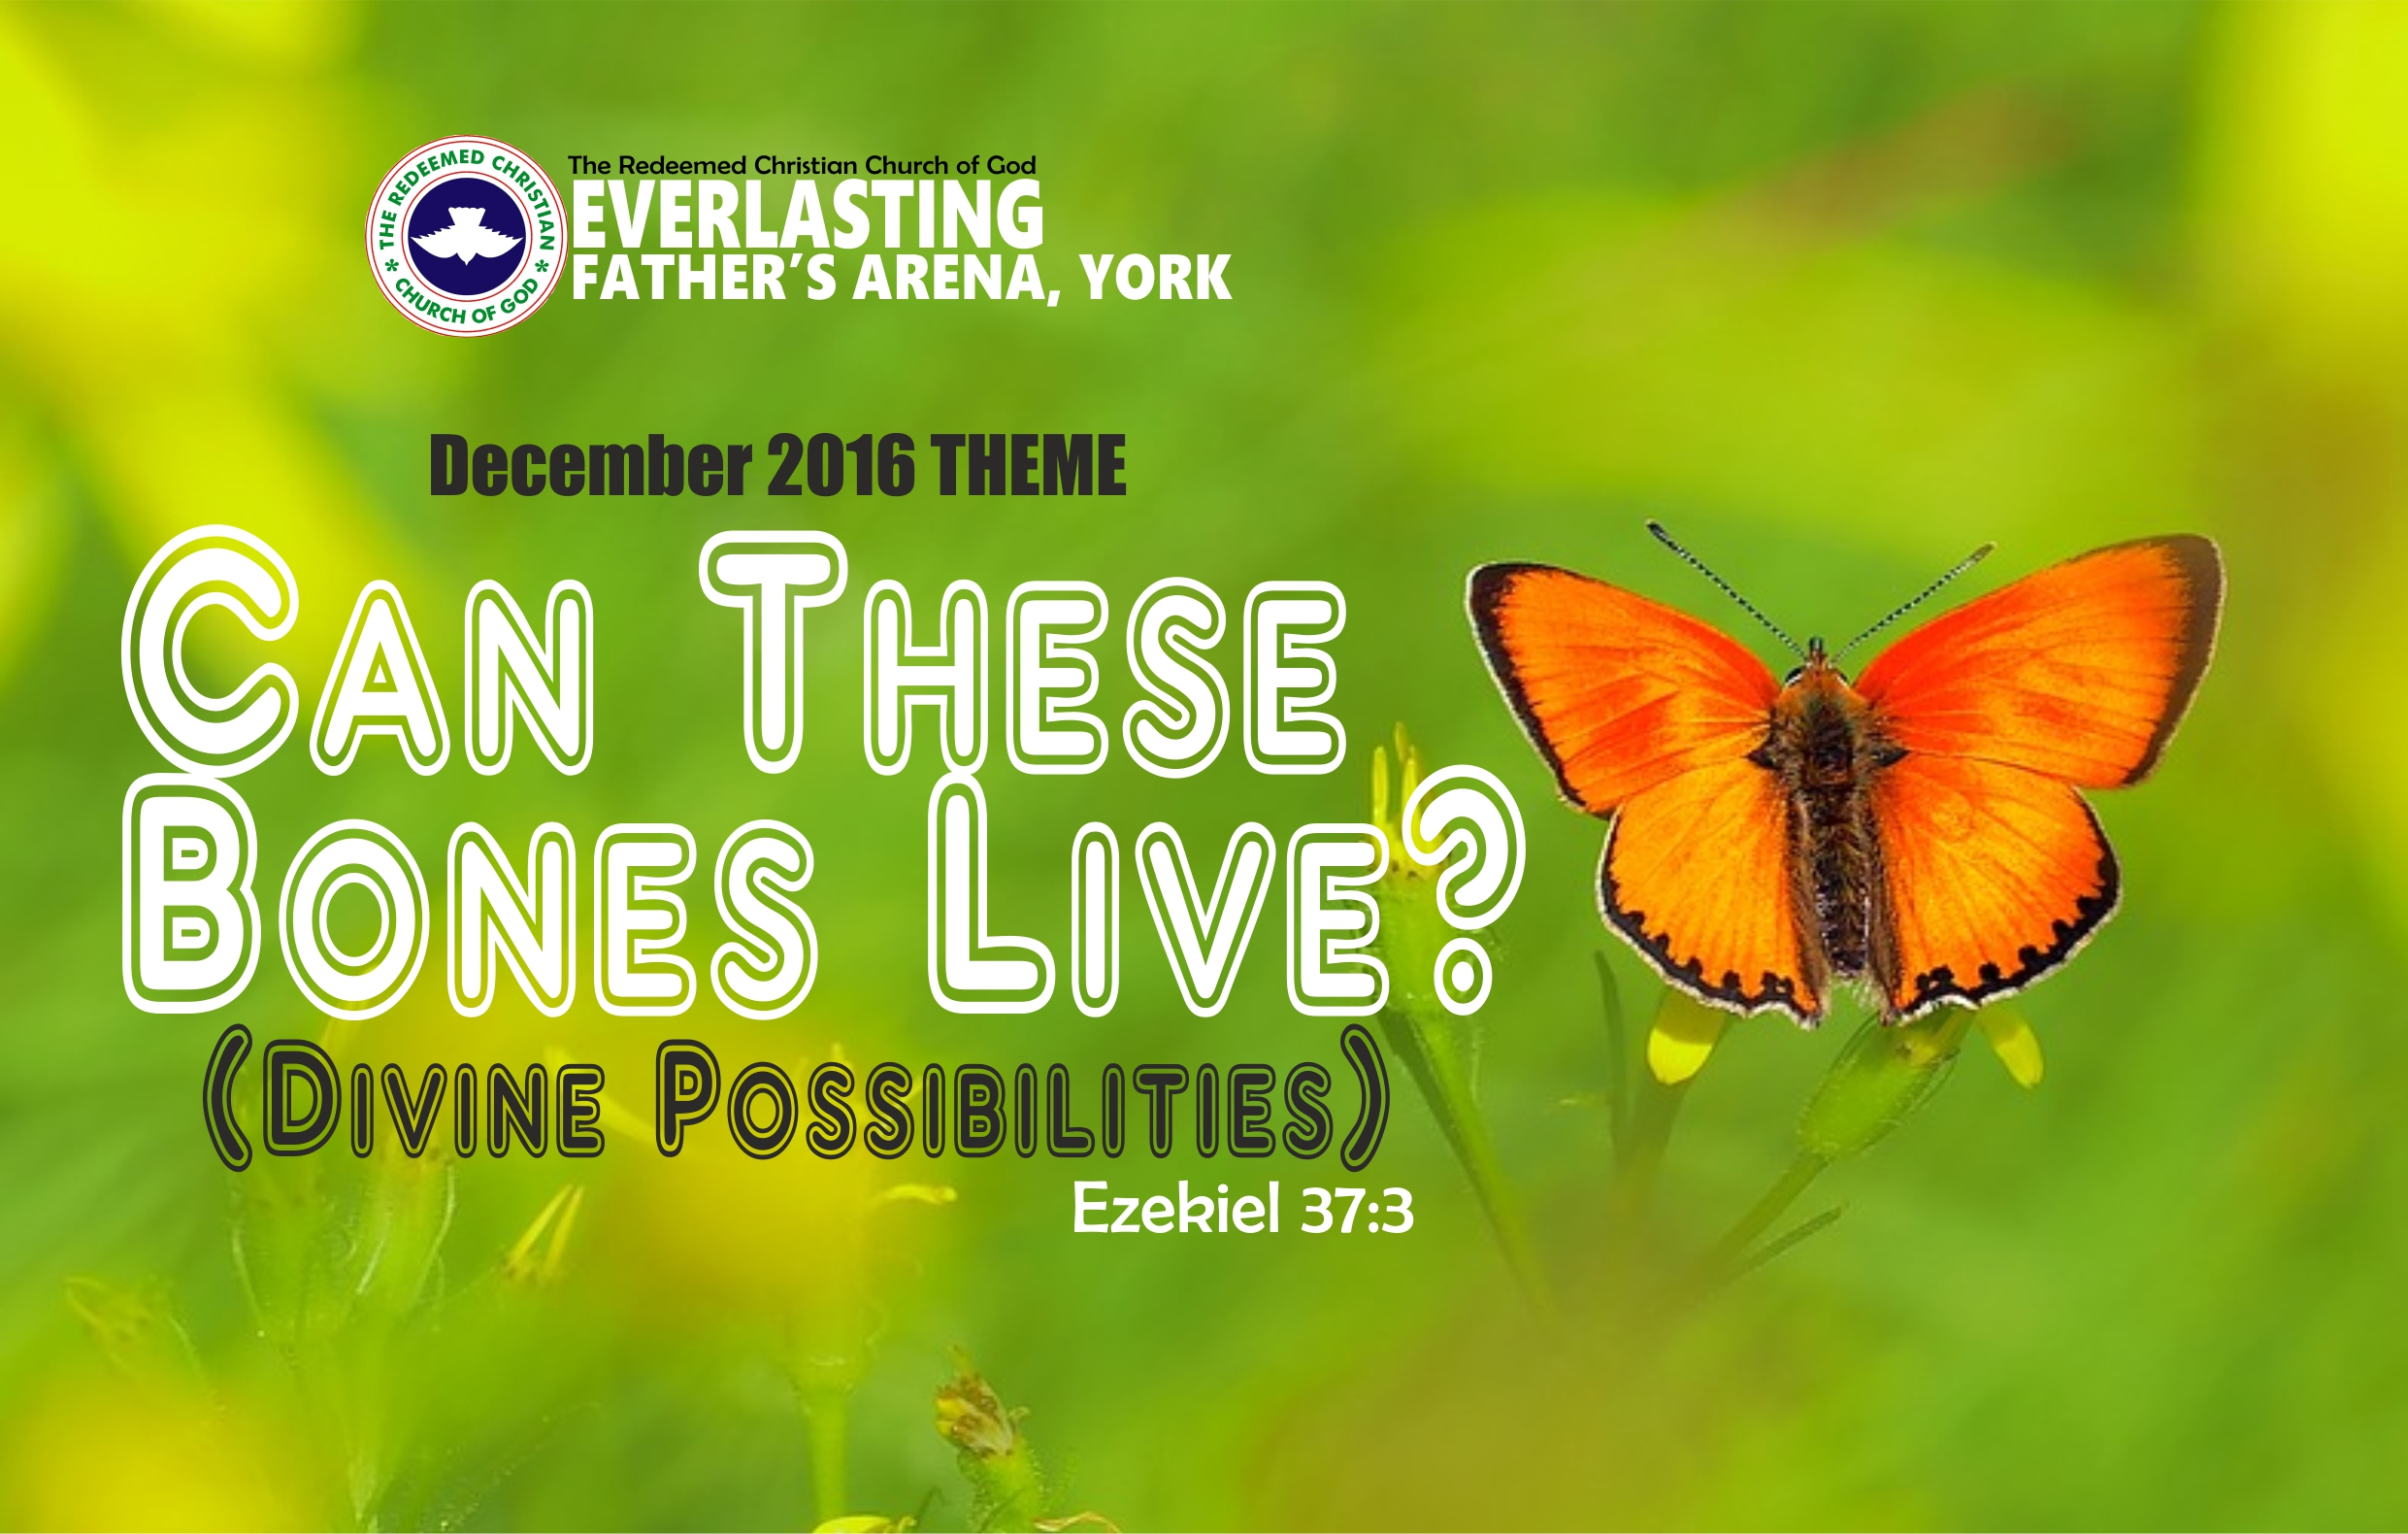 December 2016 Theme – Can These Bone Live? (Divine Possibilities) – Ezekiel 37:3